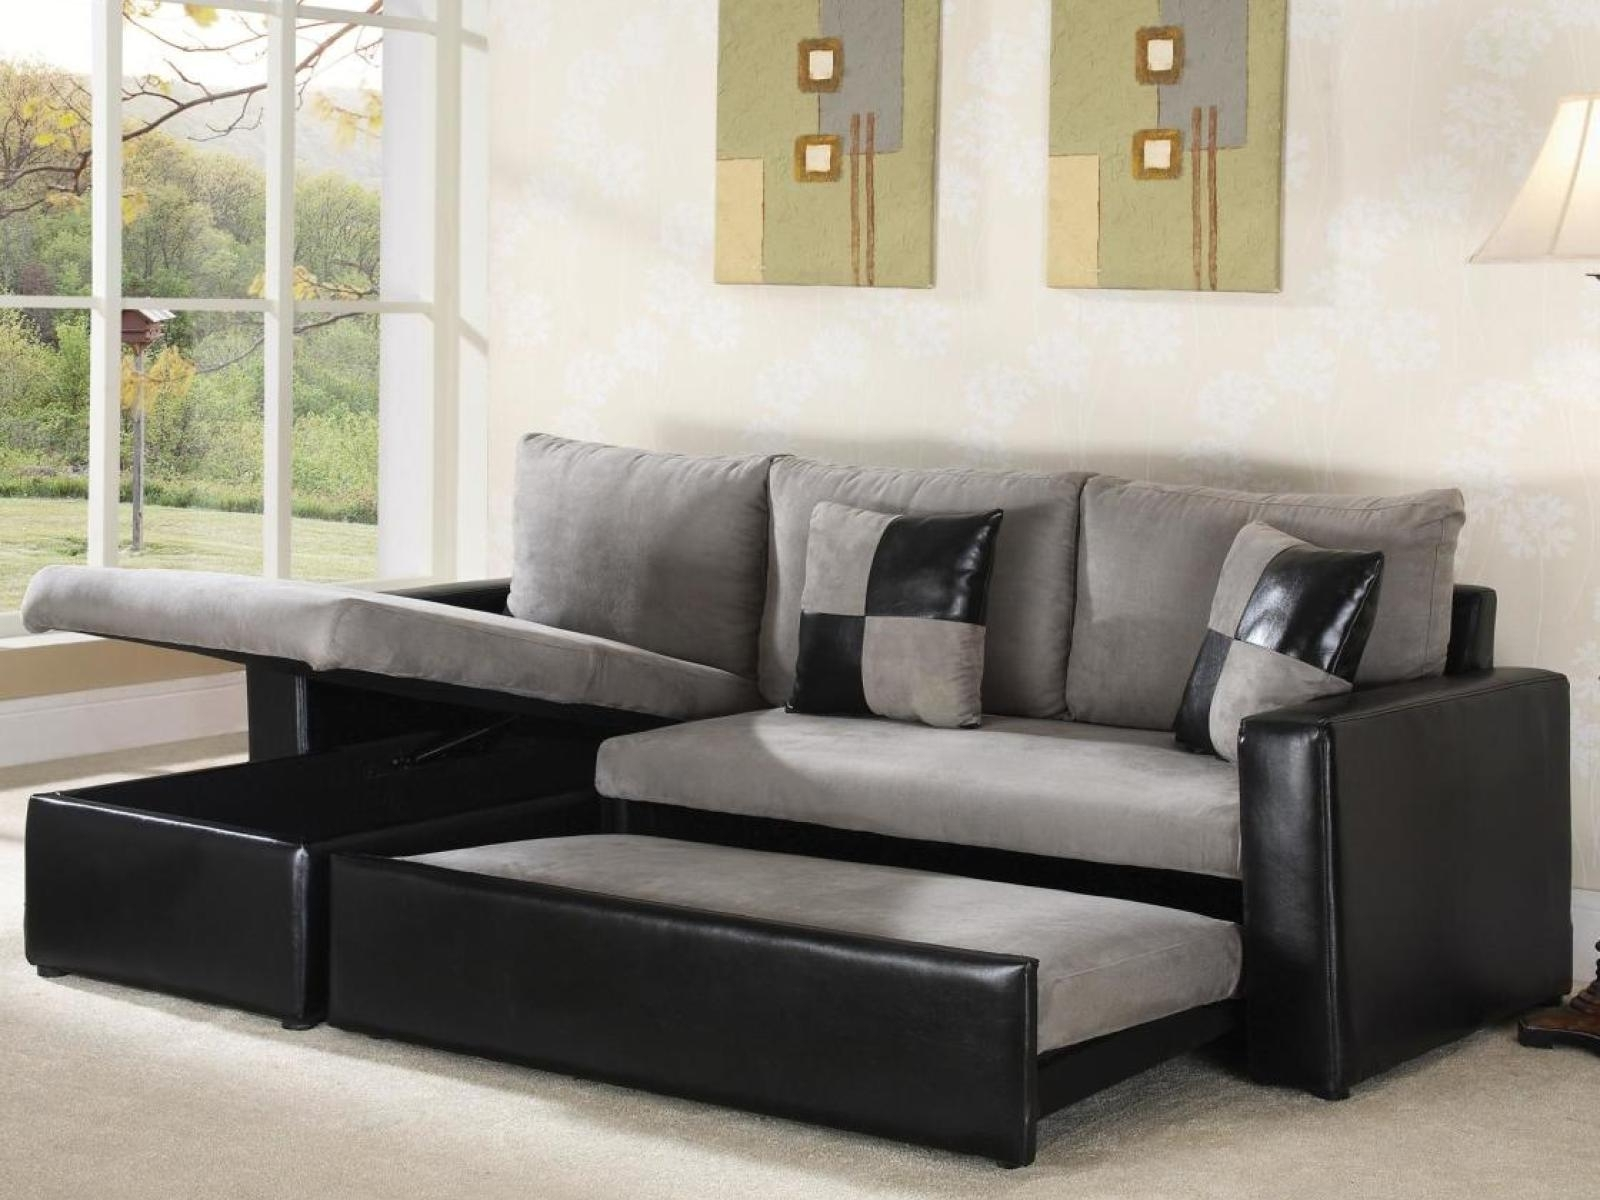 L Shaped Sectional Sleeper Sofas In Recent L Shaped Sectional Sleeper Sofa – Ansugallery (View 8 of 15)